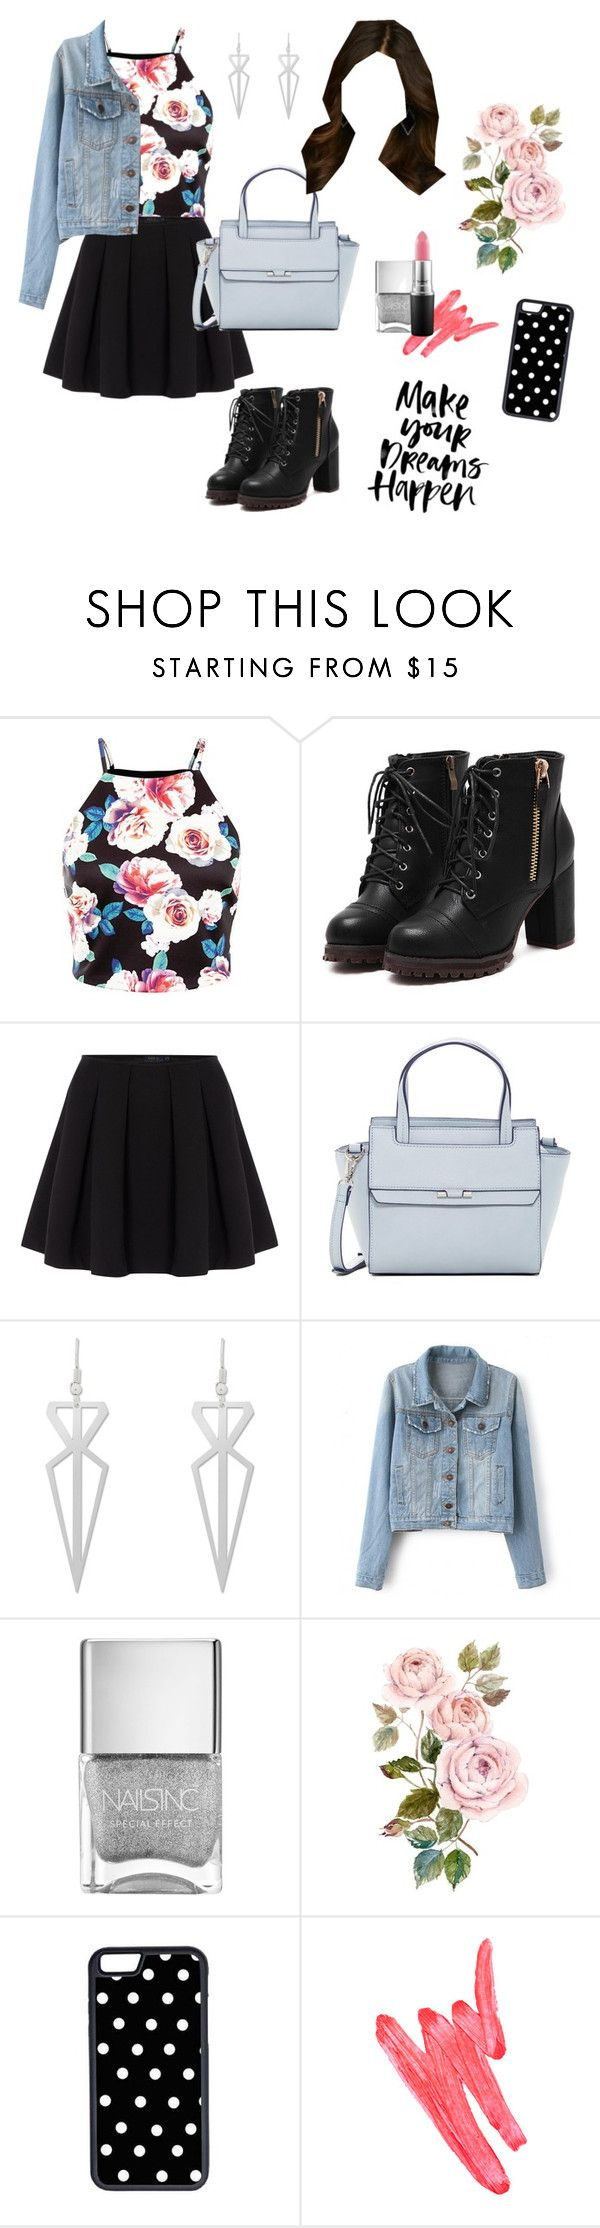 """""""Aria Montgomery Inspired Outfit - PLL"""" by pll-blog on Polyvore featuring Polo Ralph Lauren, Danielle Nicole, CellPowerCases, Ilia, women's clothing, women's fashion, women, female, woman and misses"""